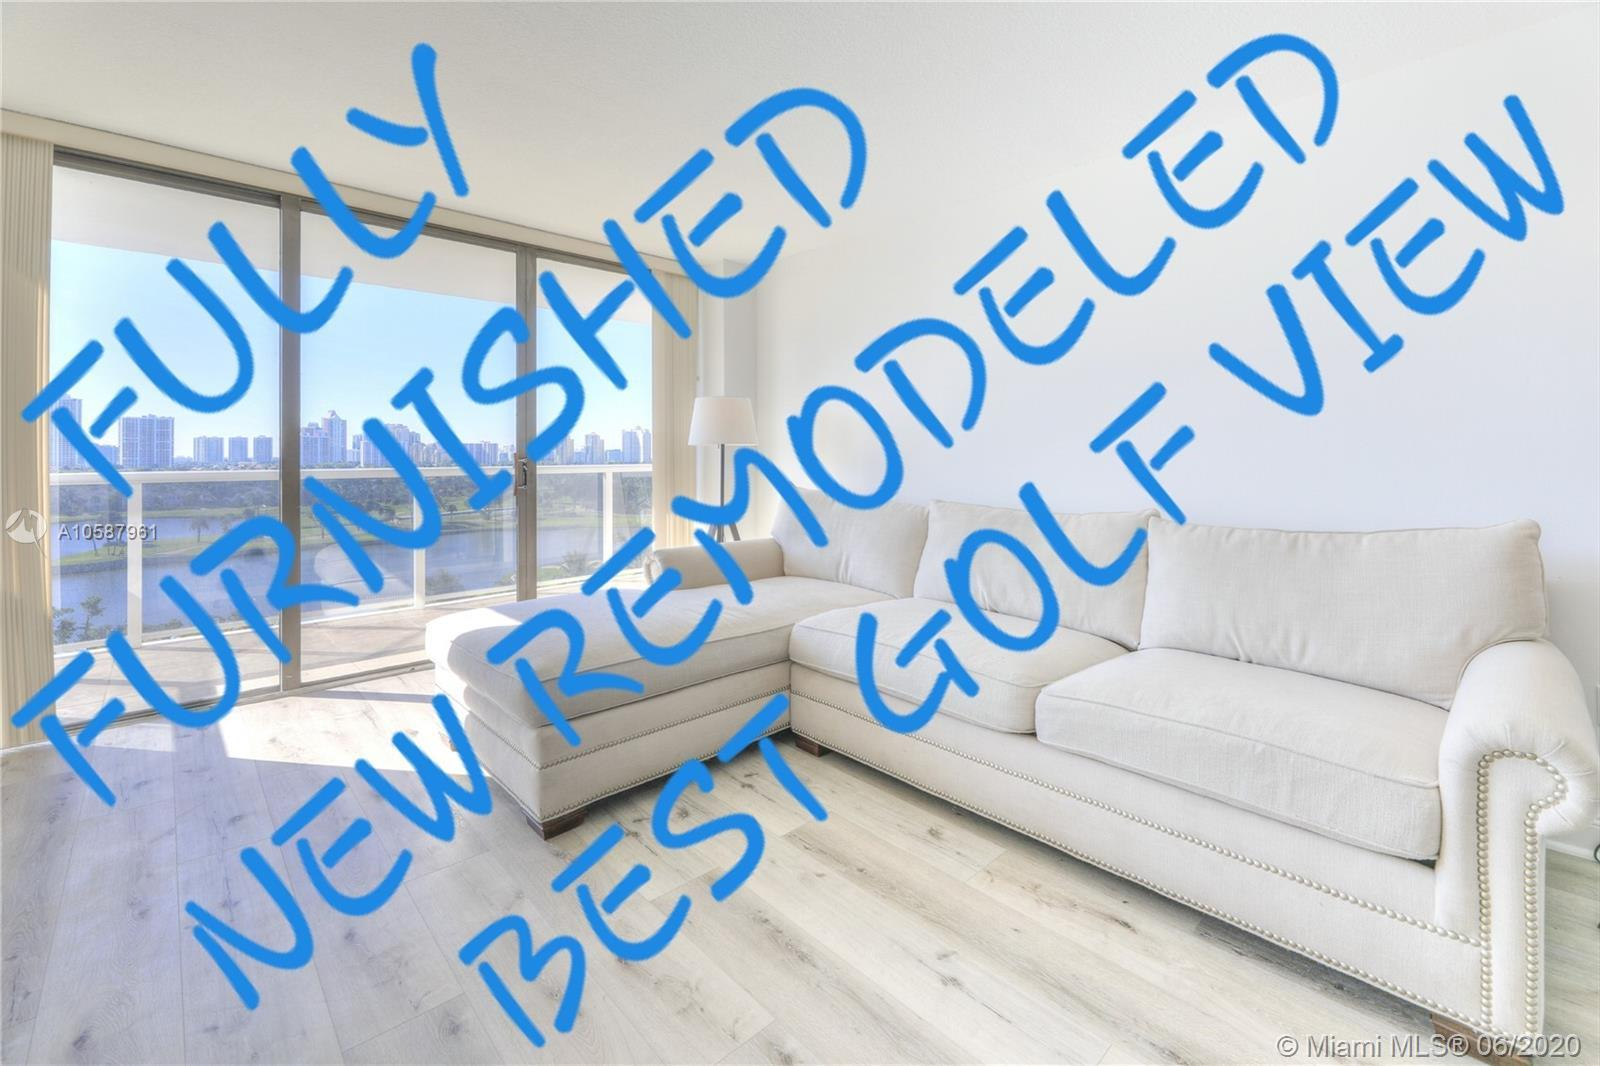 See Remarks, REDUCED $ 36,000 FOR QUICK SALE, and +$ 40,000 in Renovations, Seller will pay the spec